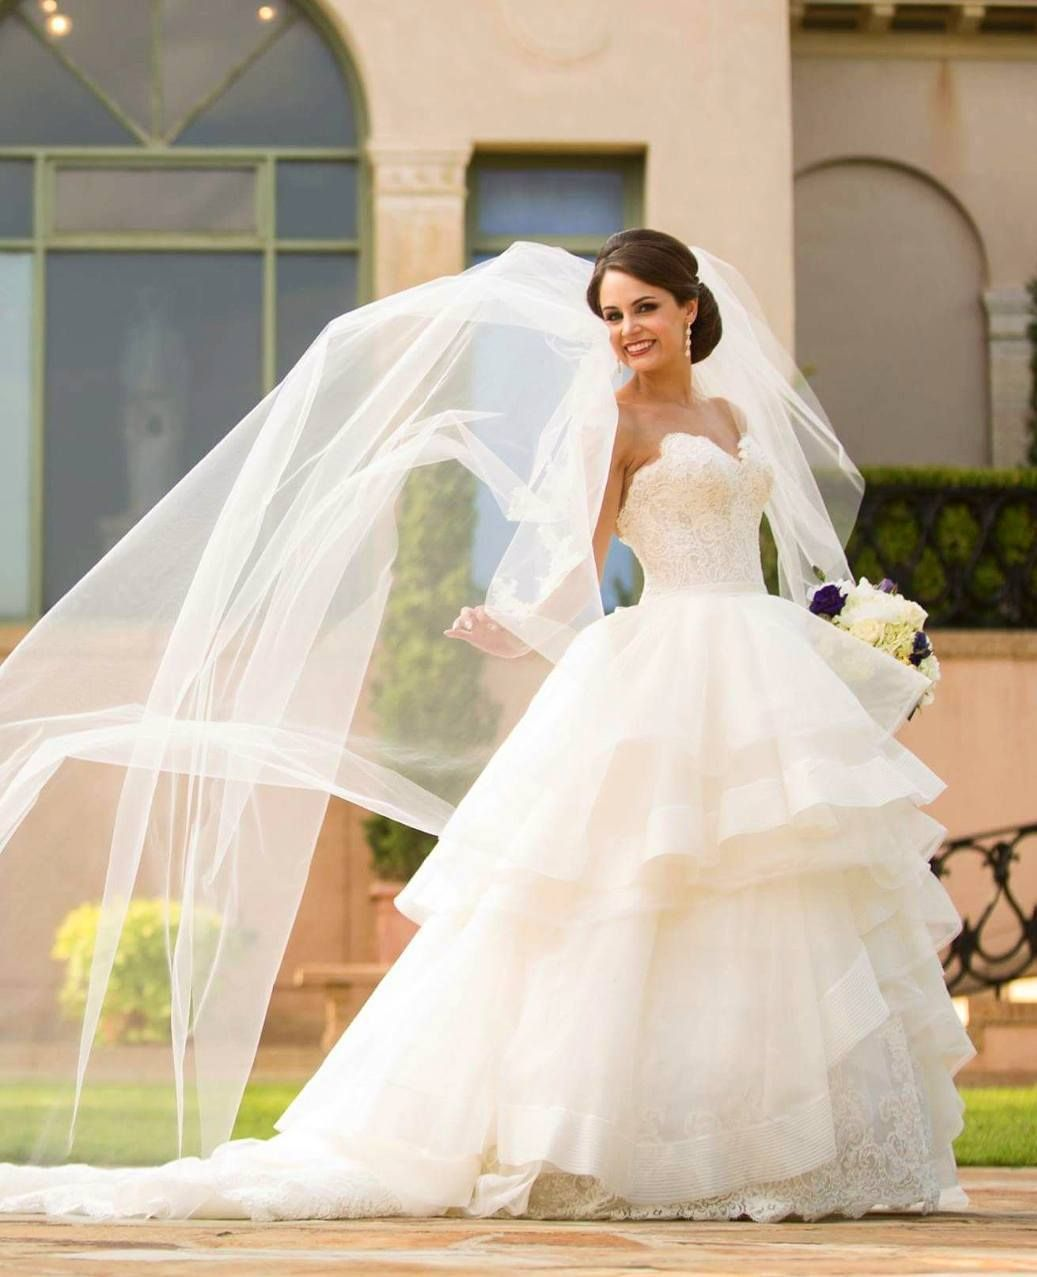 Isabelle armstrong brides weddings wedding gowns wedding dress